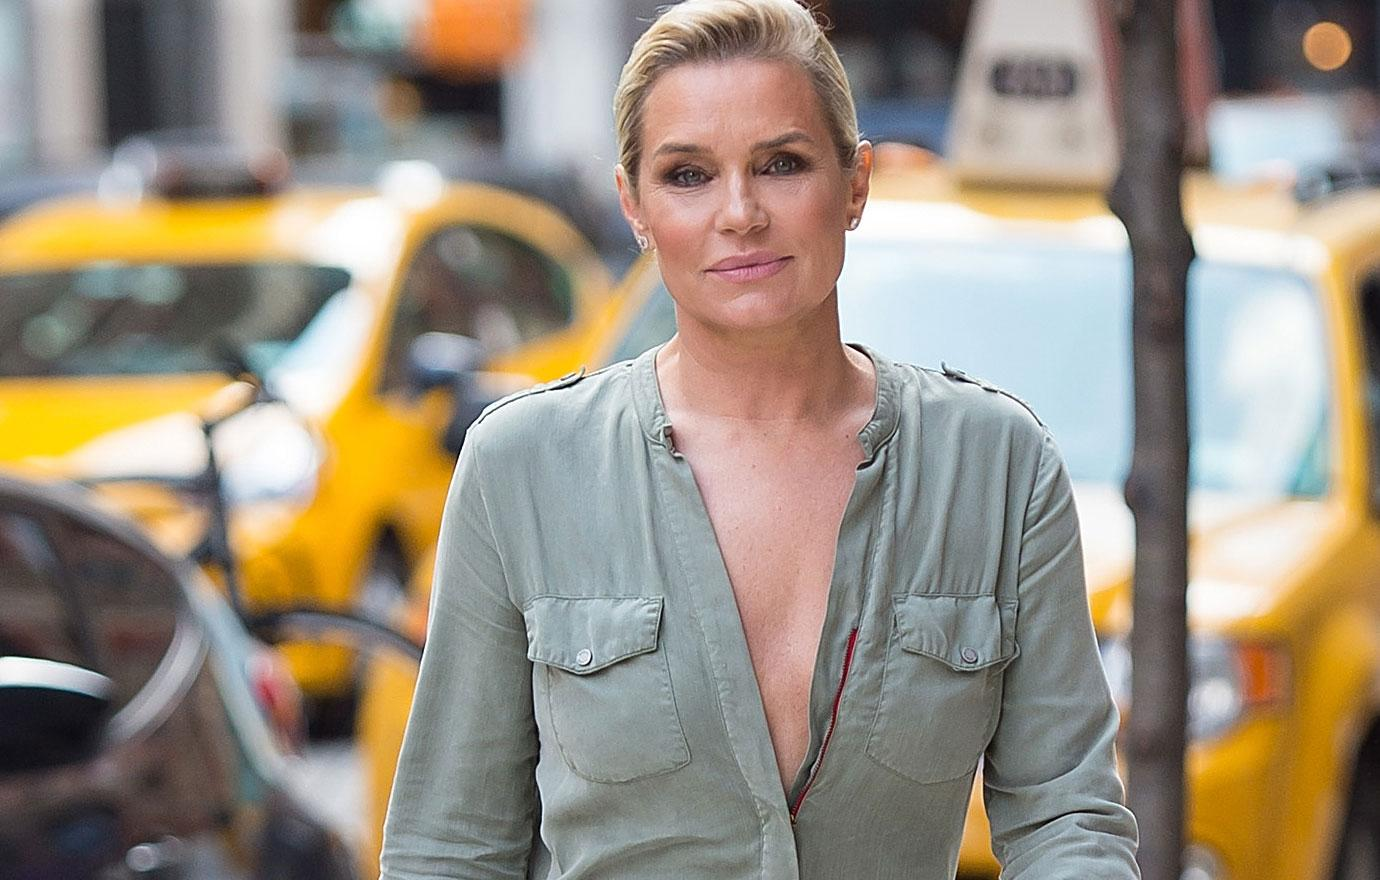 yolanda hadid new book tell all memoir